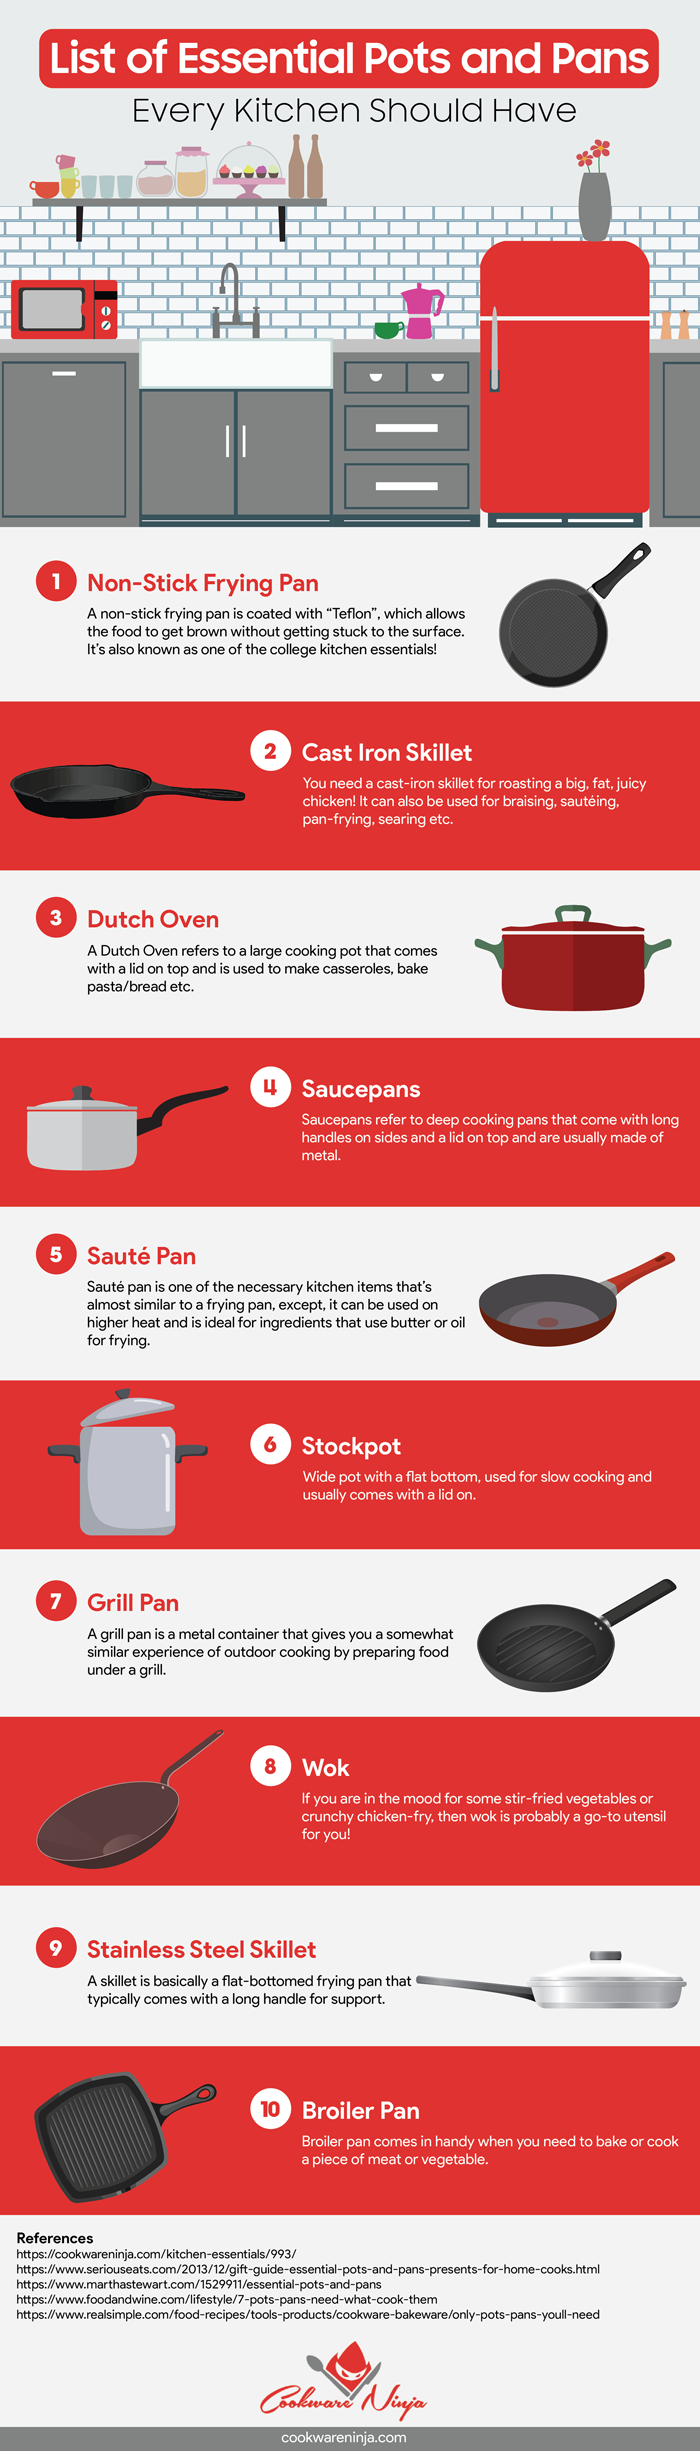 Kitchen Essentials Infographic (Essential Pots and Pans)